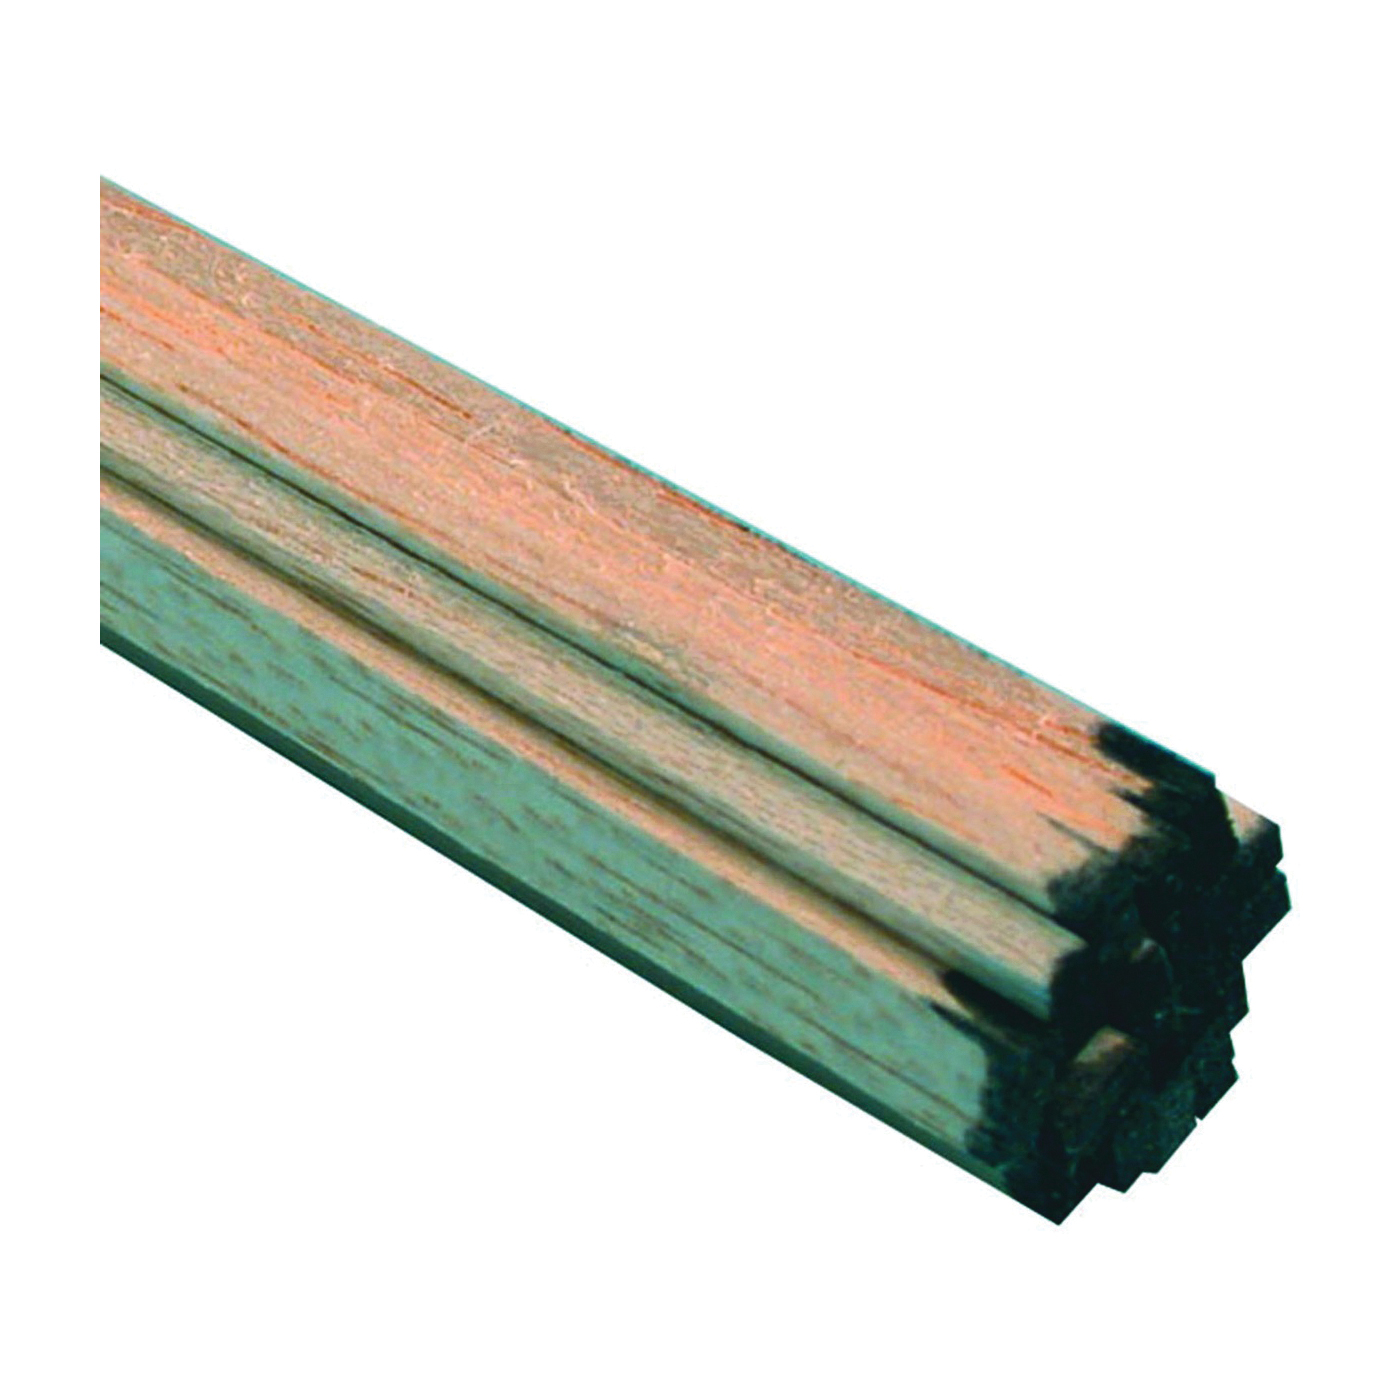 Picture of MIDWEST PRODUCTS 6046 Balsa Wood, 36 in L, Wood